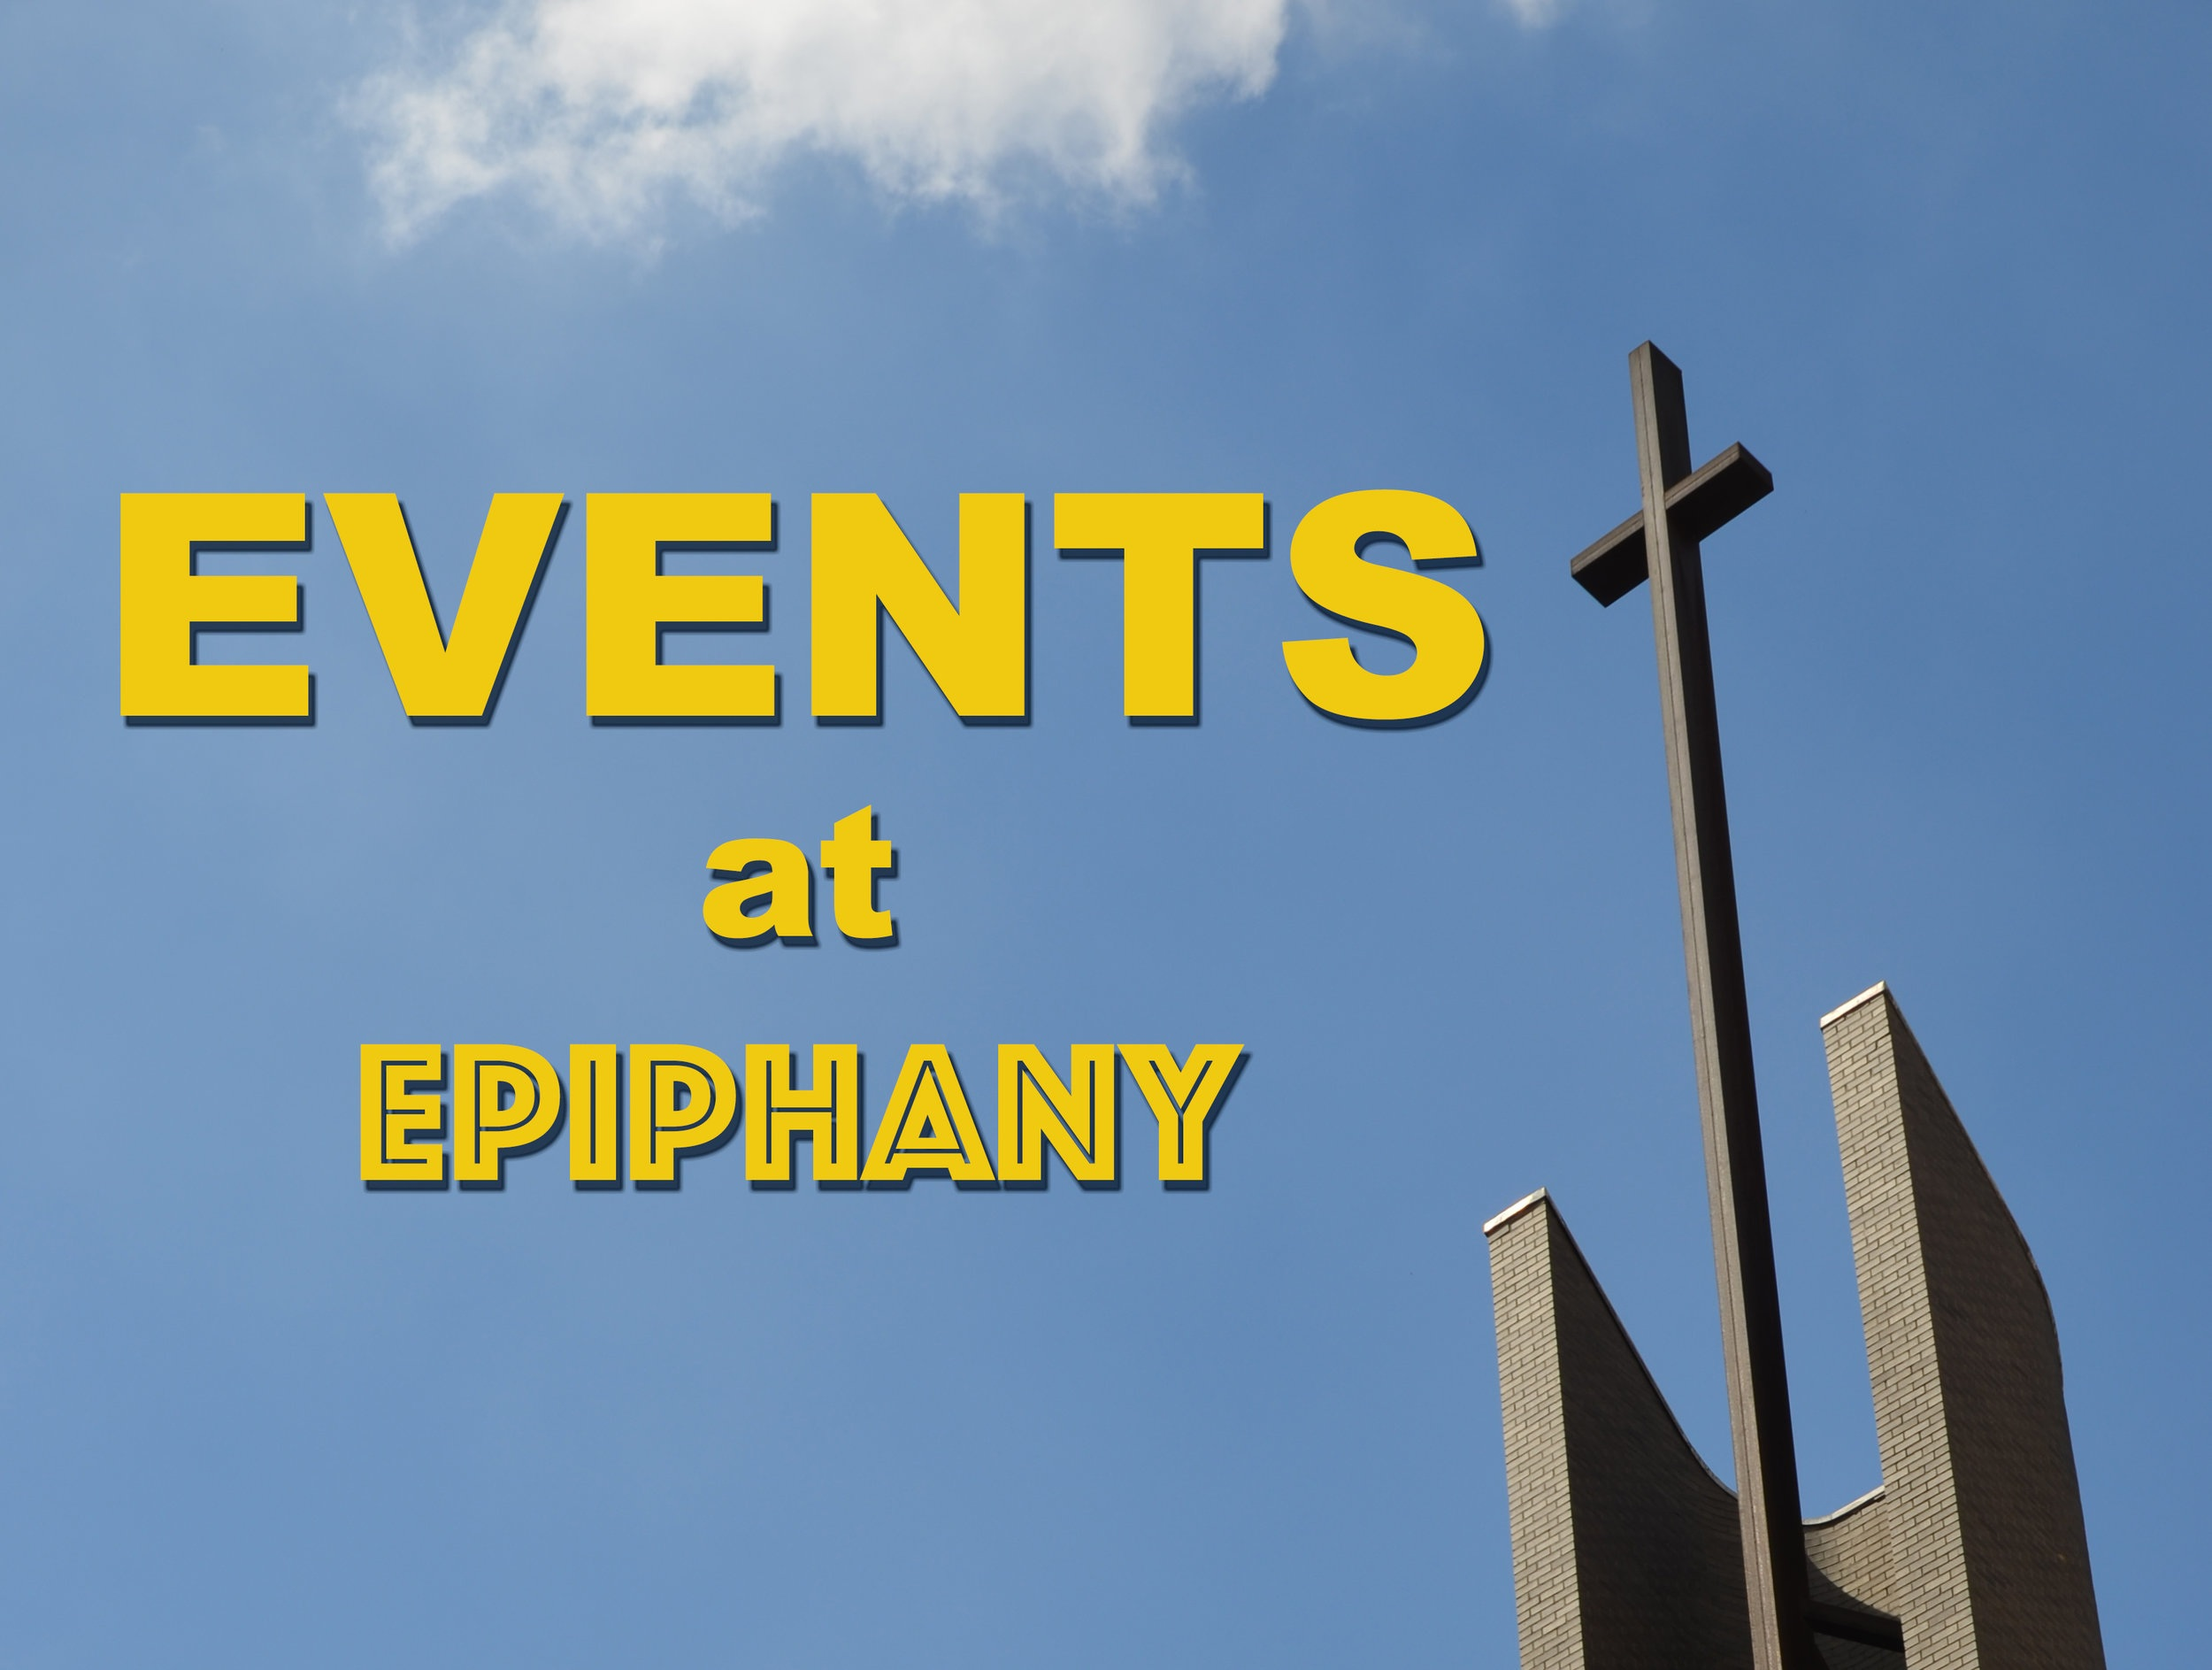 EVENTS AT EPIPHANY BUTTON.jpg